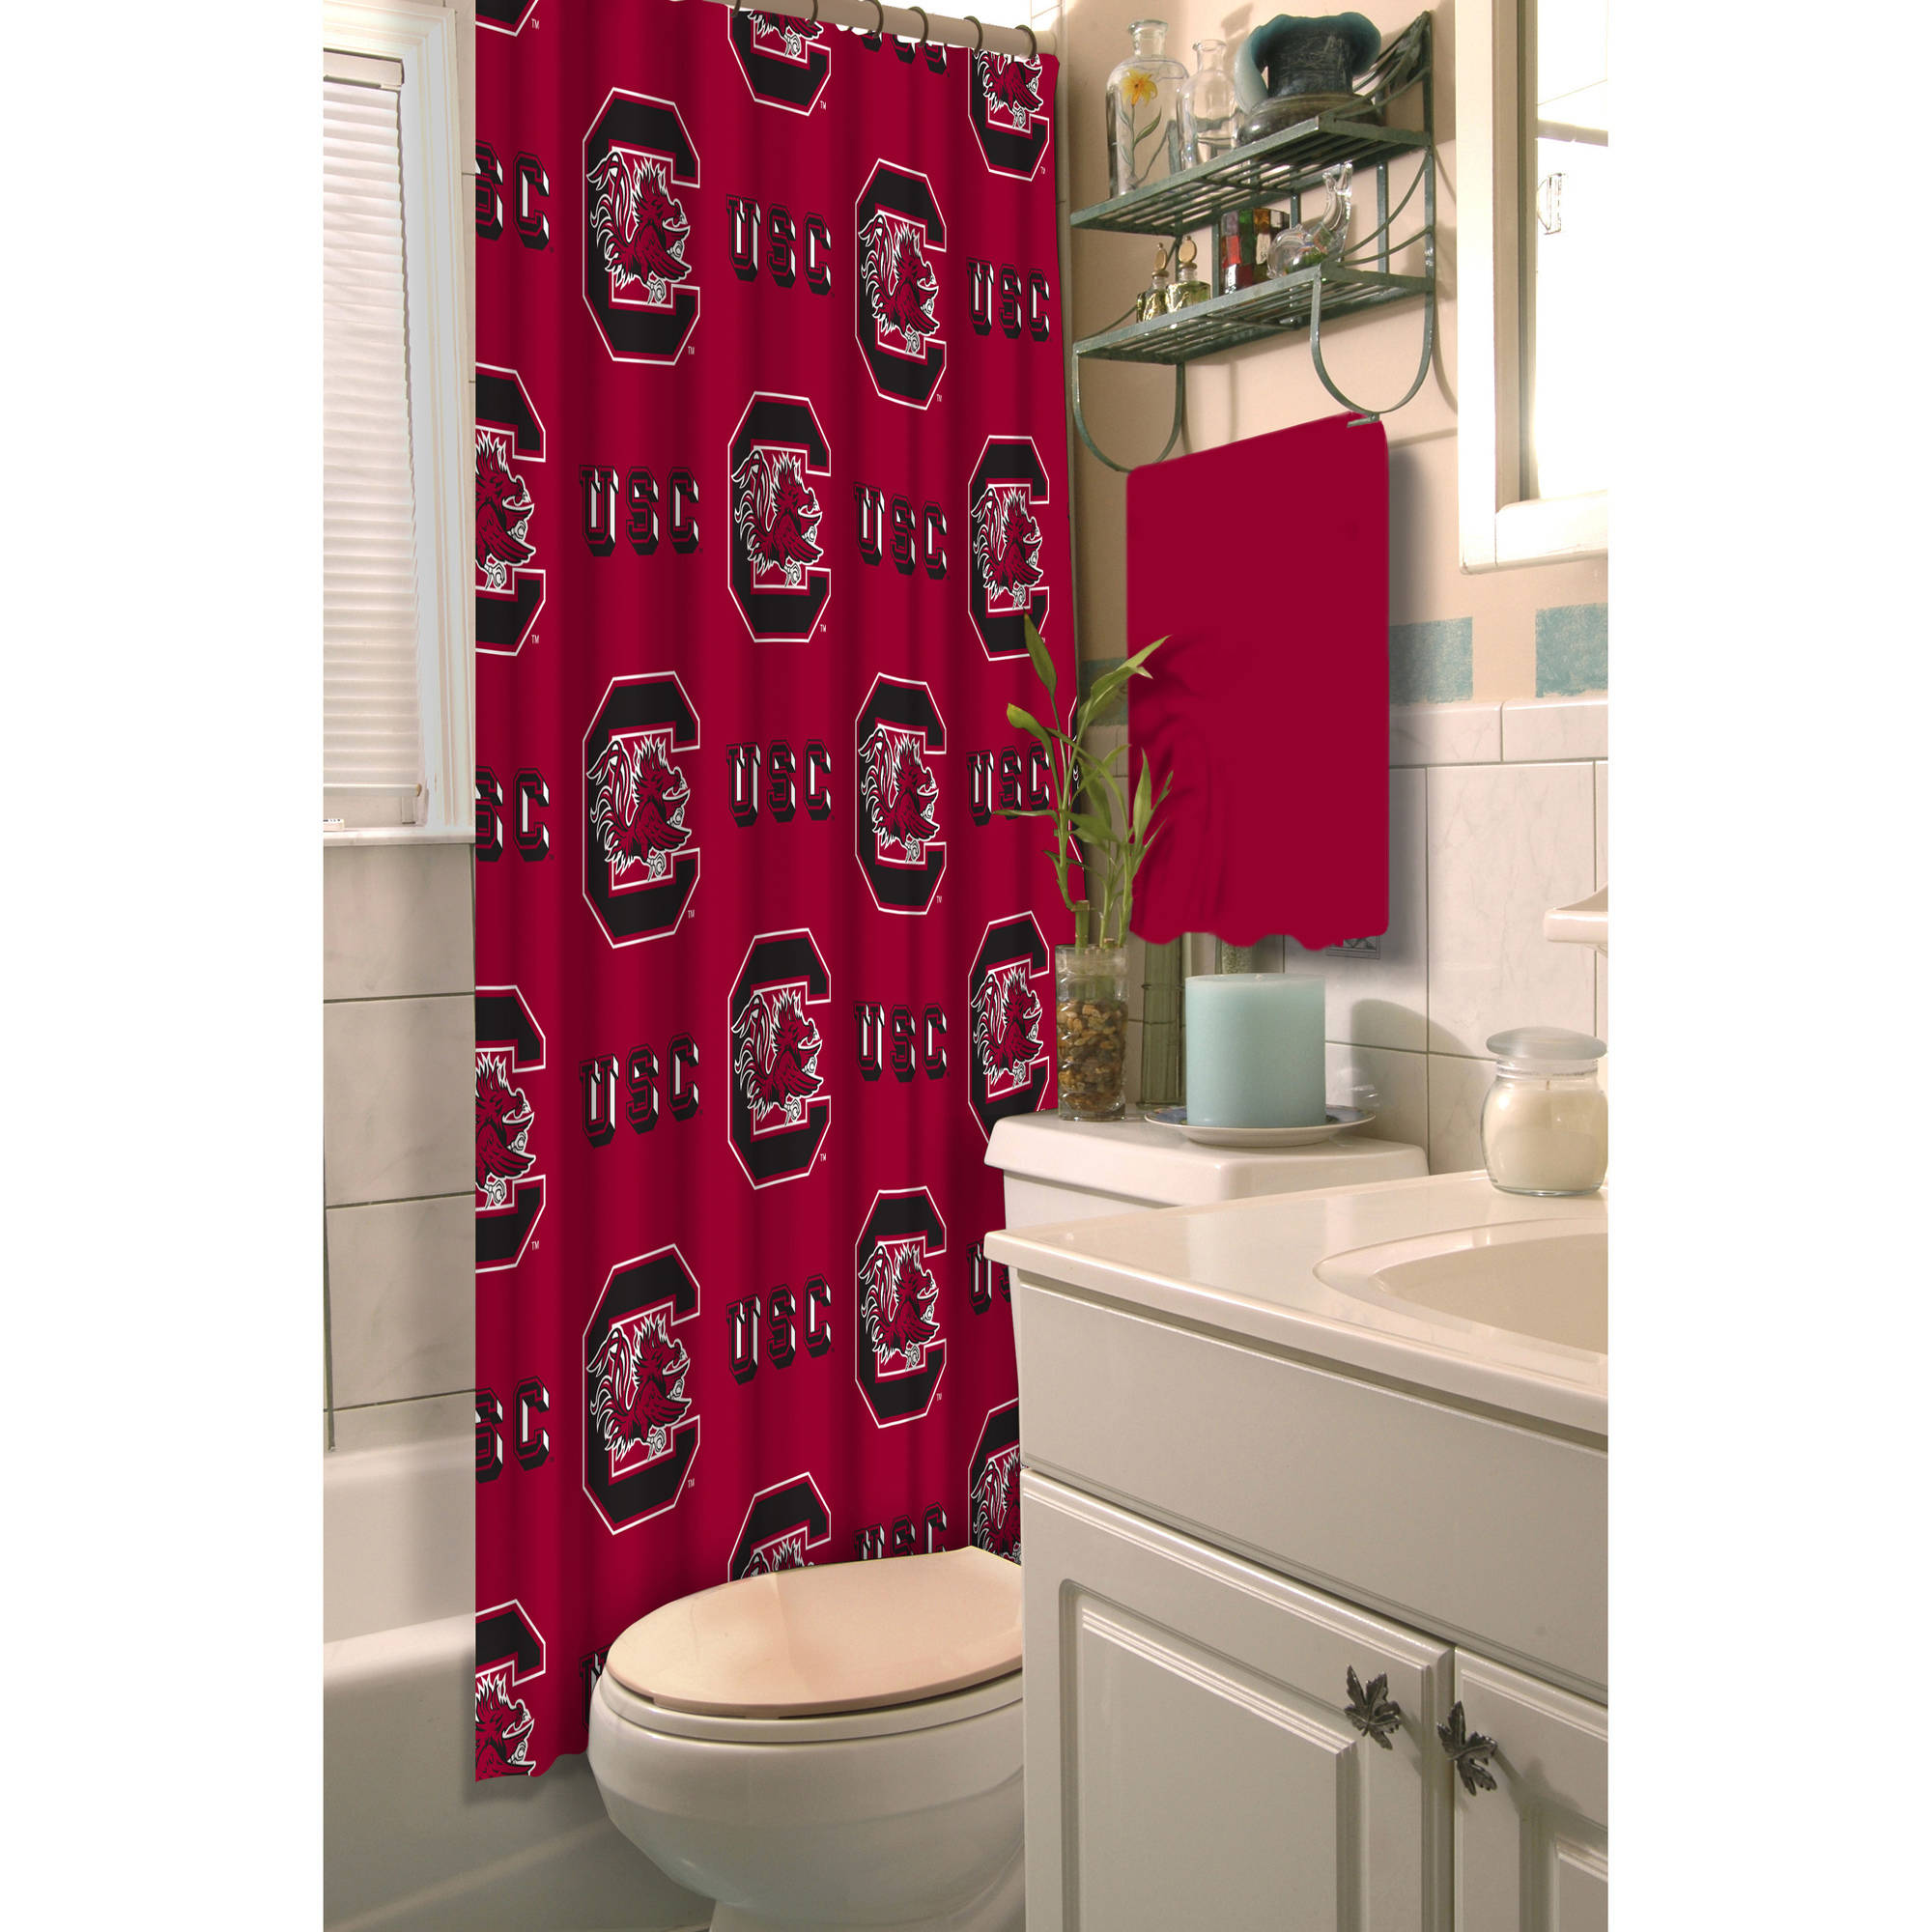 NCAA University of South Carolina Decorative Bath Collection - Shower Curtain